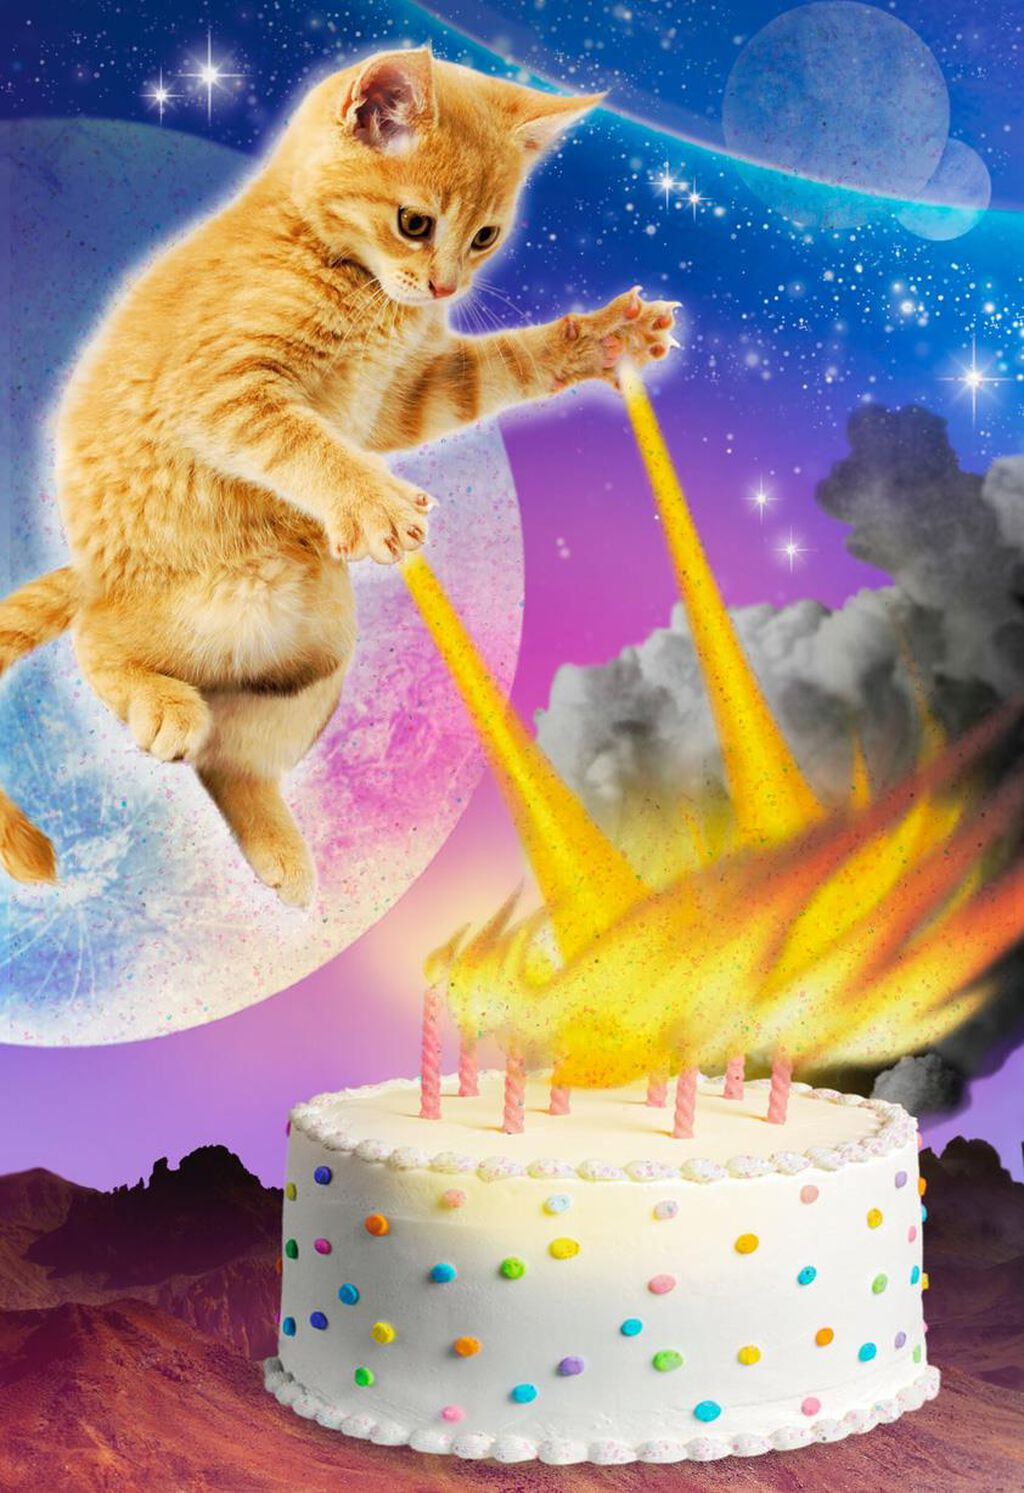 Cakes On Fire Funny Birthday Card